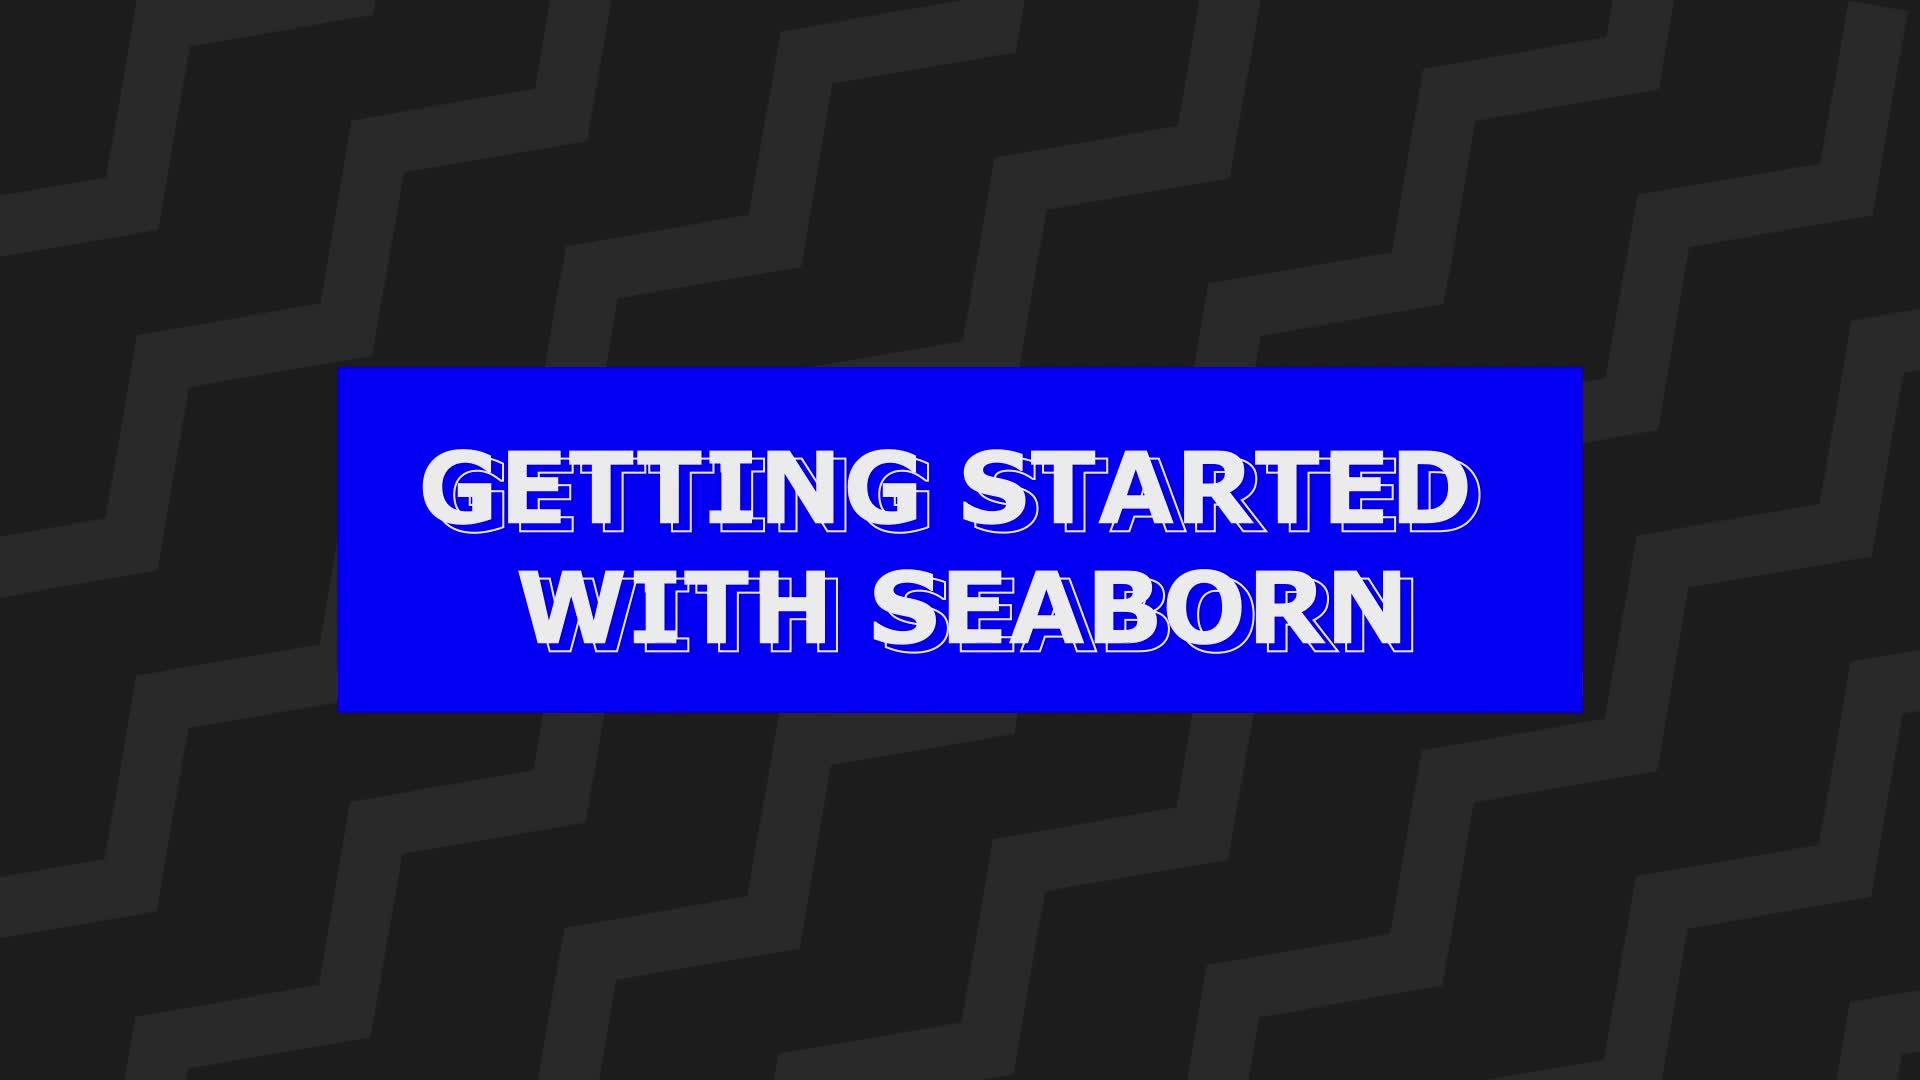 Getting started with Seaborn